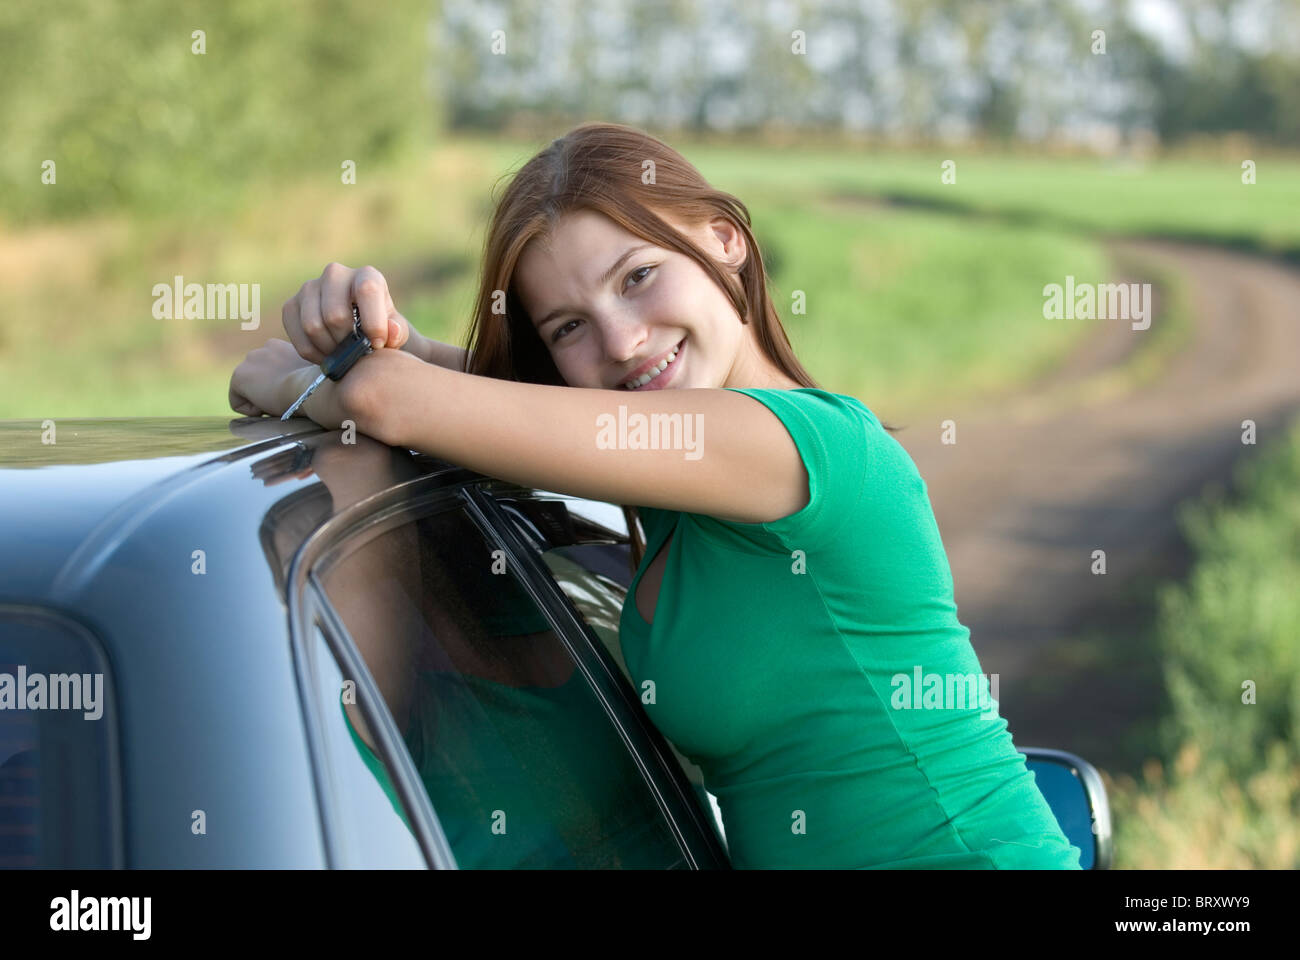 Young woman leaning pn car on country road - Stock Image